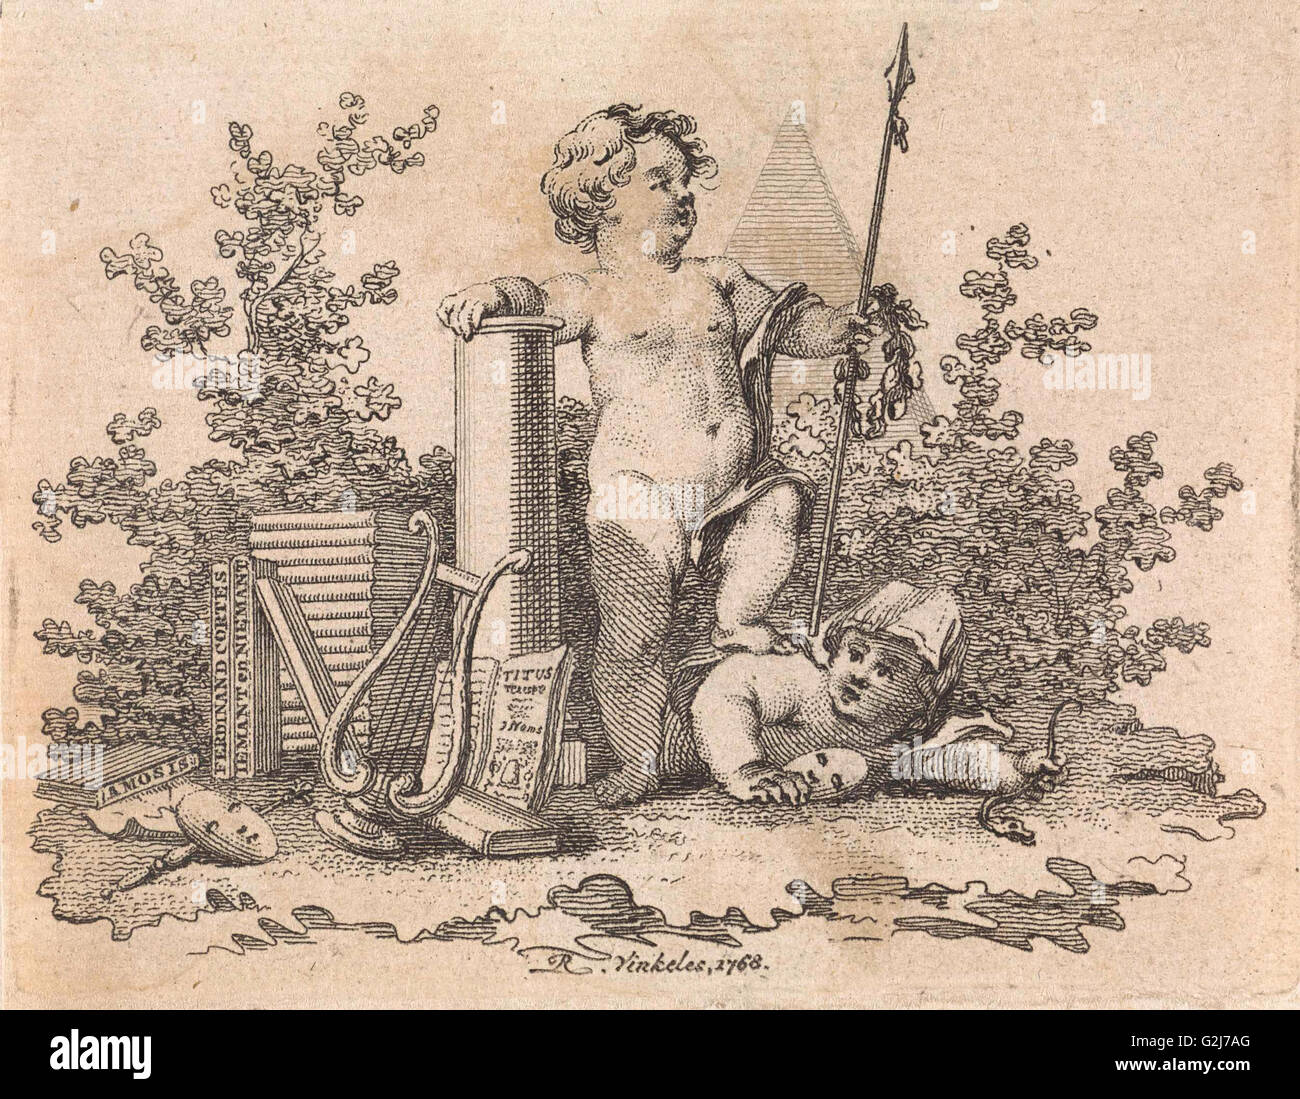 Two putti with allegorical attributes, print maker: Reinier Vinkeles, 1768 - Stock Image